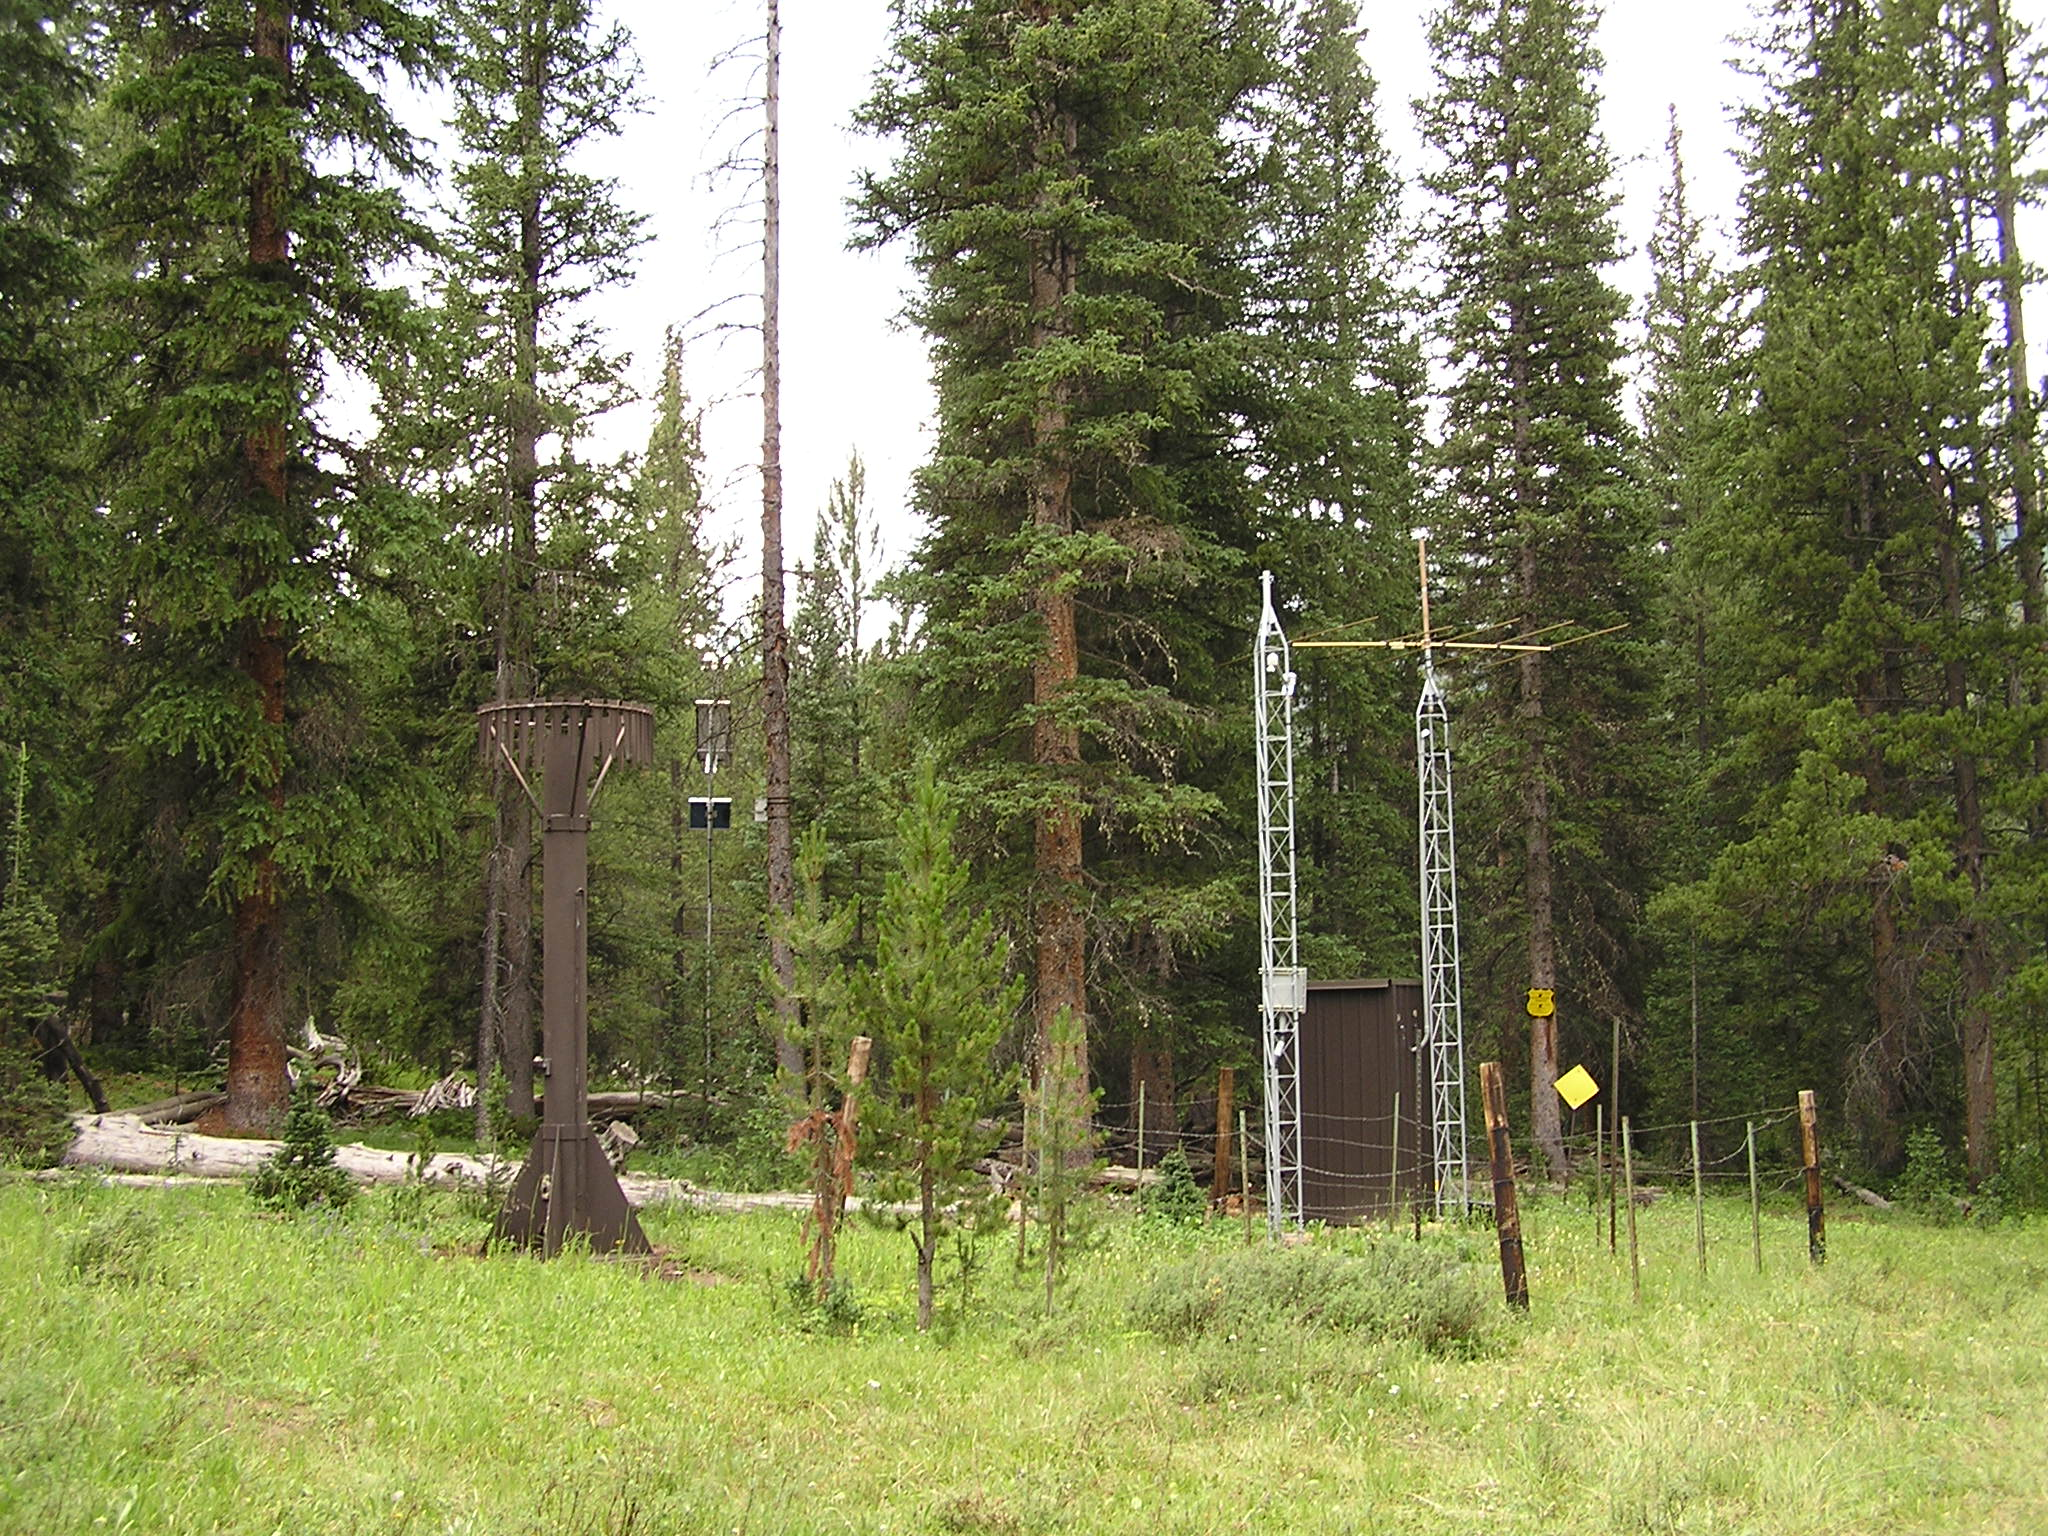 Photograph is of the Willow Creek Pass     SNOTEL site.